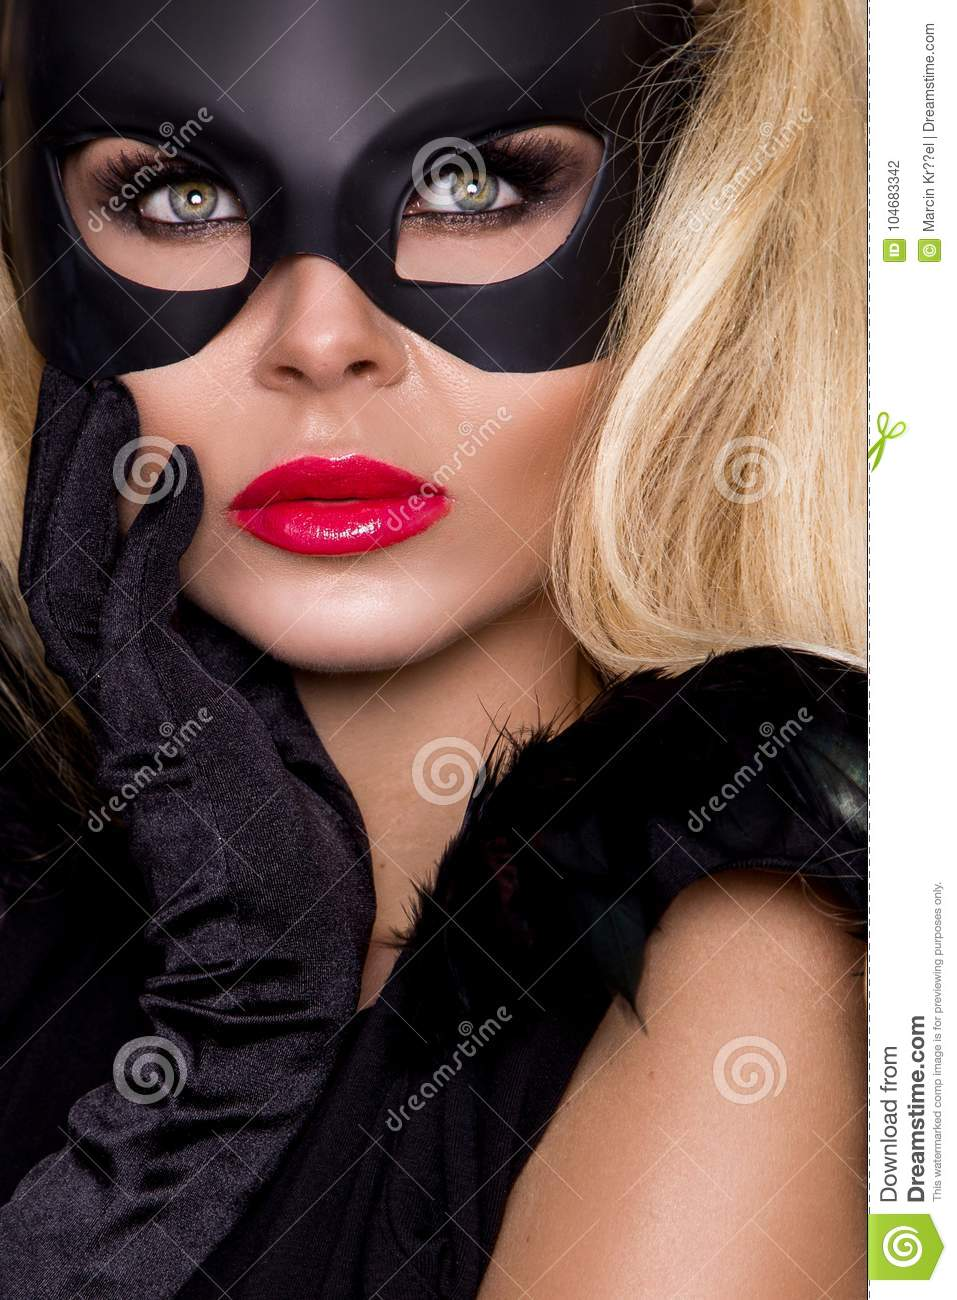 Beauty women: masks for breasts